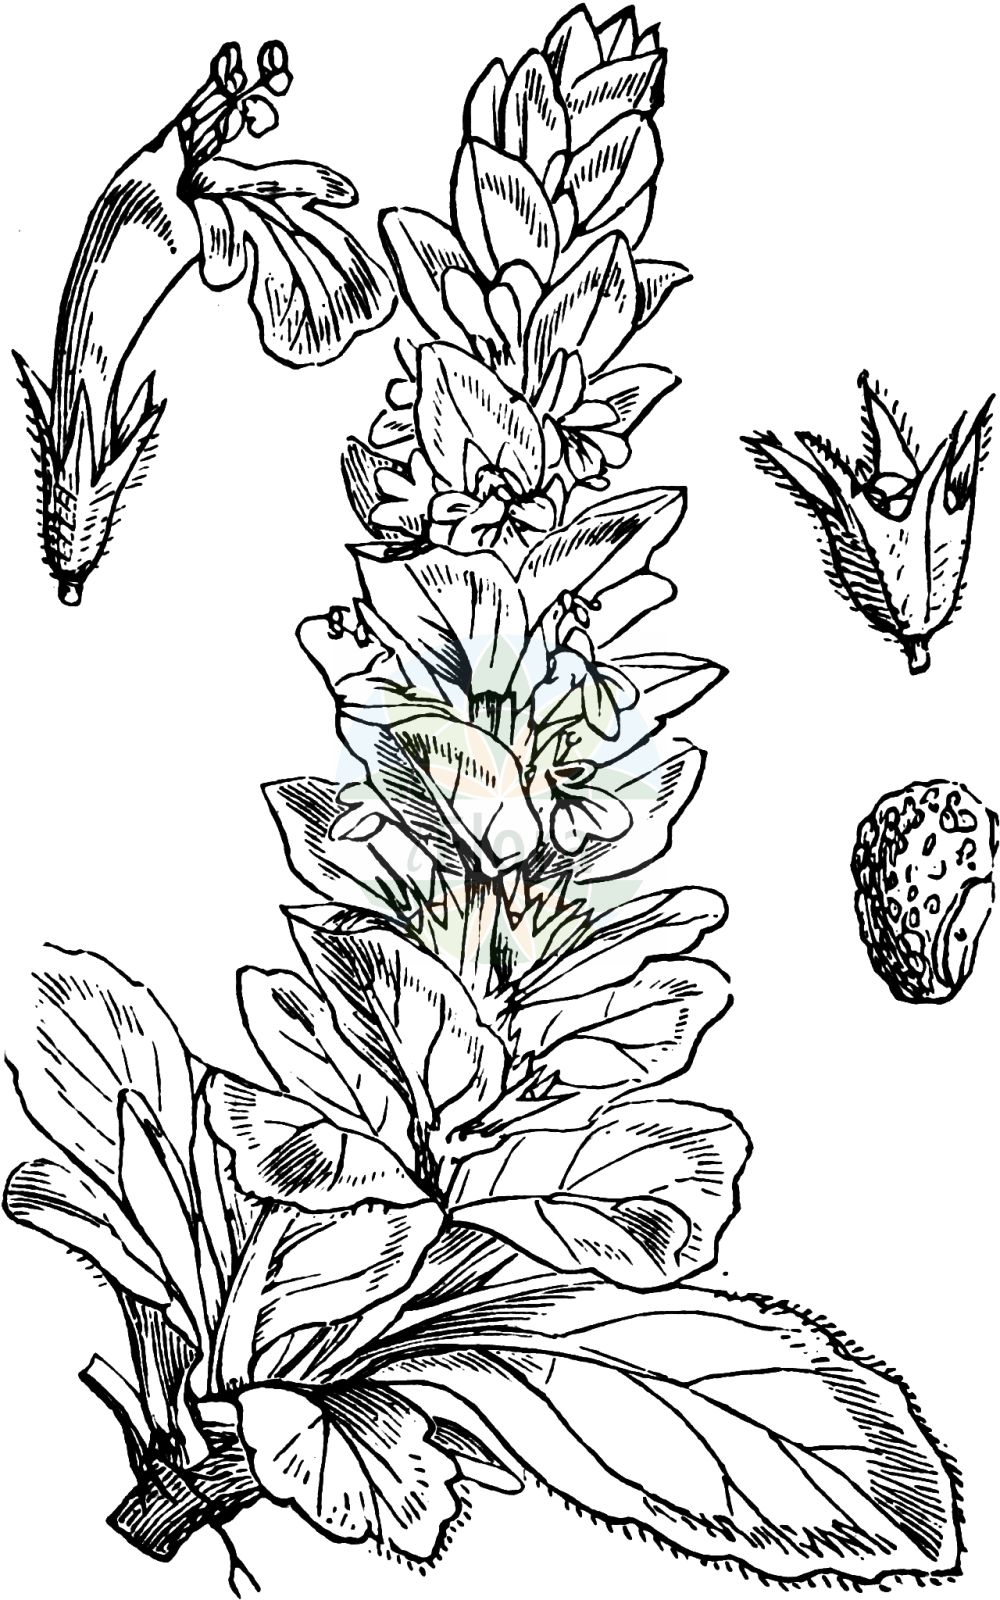 Historische Abbildung von Ajuga genevensis (Genfer Guensel - Cornish Bugle). Das Bild zeigt Blatt, Bluete, Frucht und Same. ---- Historical Drawing of Ajuga genevensis (Genfer Guensel - Cornish Bugle).The image is showing leaf, flower, fruit and seed.(Ajuga genevensis,Genfer Guensel,Cornish Bugle,Ajuga alpestris,Ajuga alpicola,Ajuga foliosa,Ajuga genevensis,Ajuga glabrifolia,Ajuga interrupta,Ajuga lanata,Ajuga montana,Ajuga rugosa,Bugula alpina,Bugula genevensis,Bugula tomentosa,Teucrium genevense,Genfer Guensel,Heide-Guensel,Zottiger Guensel,Cornish Bugle,Blue Bugle,Geneva Bugle,Ajuga,Guensel,Bugle,Lamiaceae,Lippenbluetengewaechse,Lippenbluetler,Nettle family,Blatt,Bluete,Frucht,Same,leaf,flower,fruit,seed,Fitch et al. (1880))